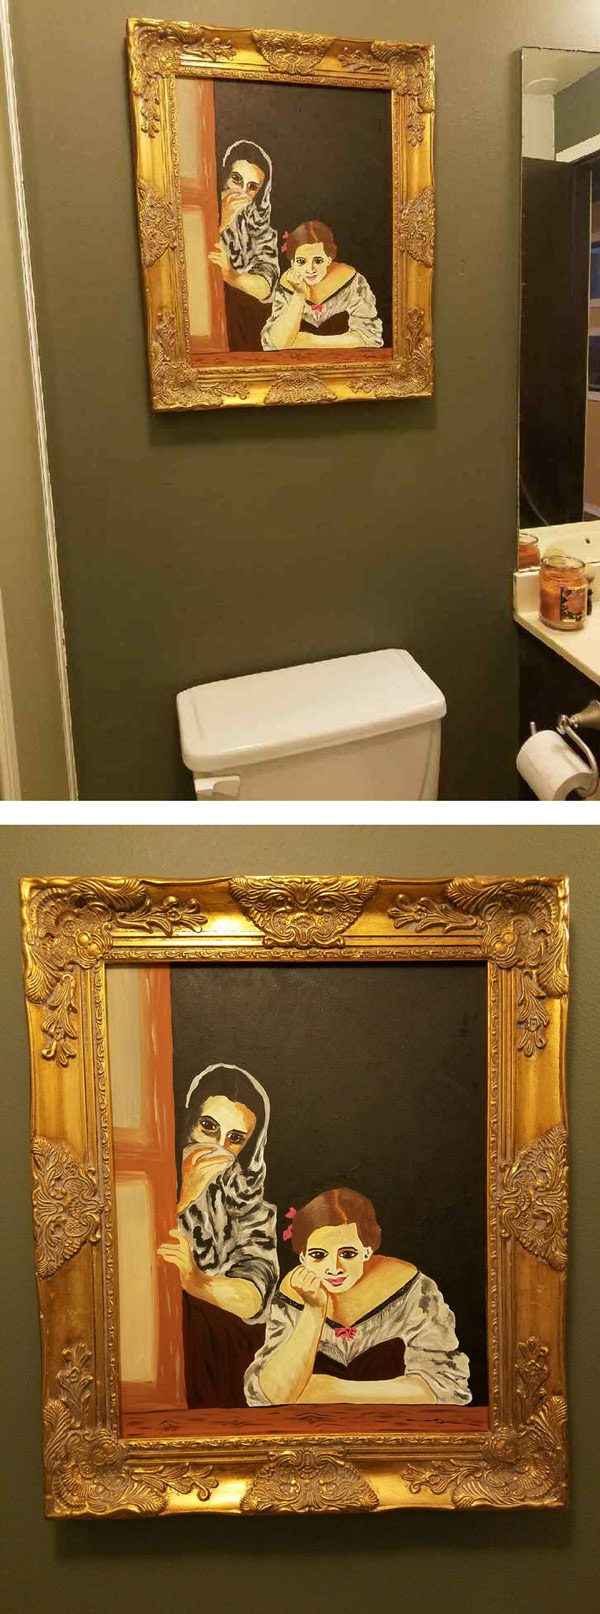 "I asked my wife to paint me something ""old timey that looks like it was stolen from a museum"" to go above the toilet in my man land... Nailed it!"